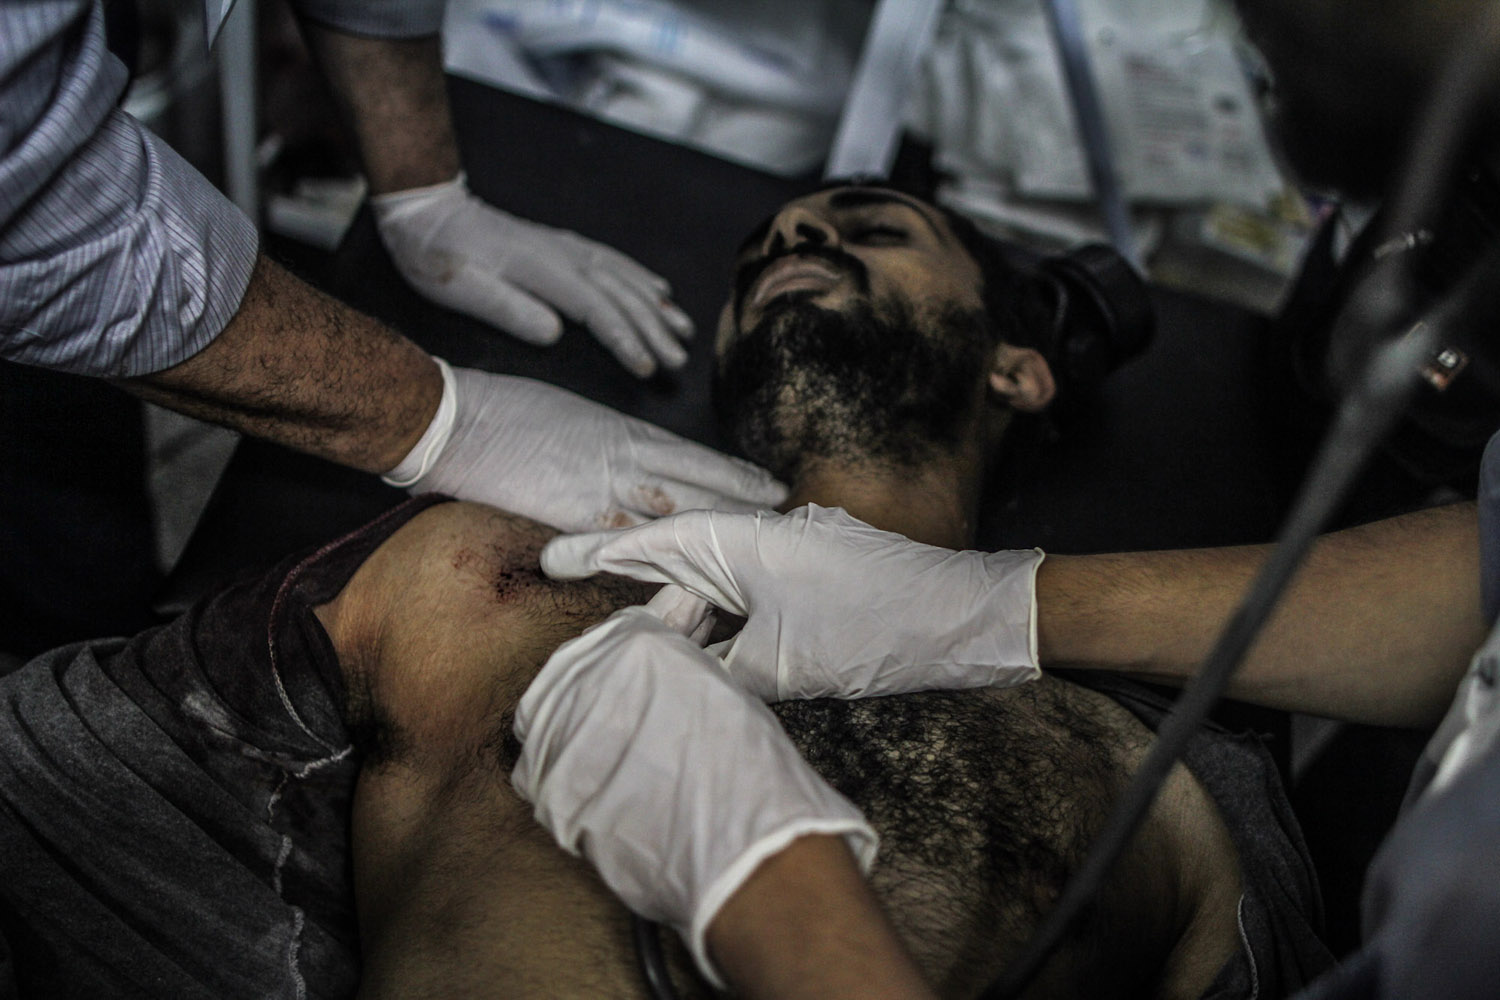 A Morsi supporter, shot in the chest, is treated by medics at a makeshift hospital near Rabaa.